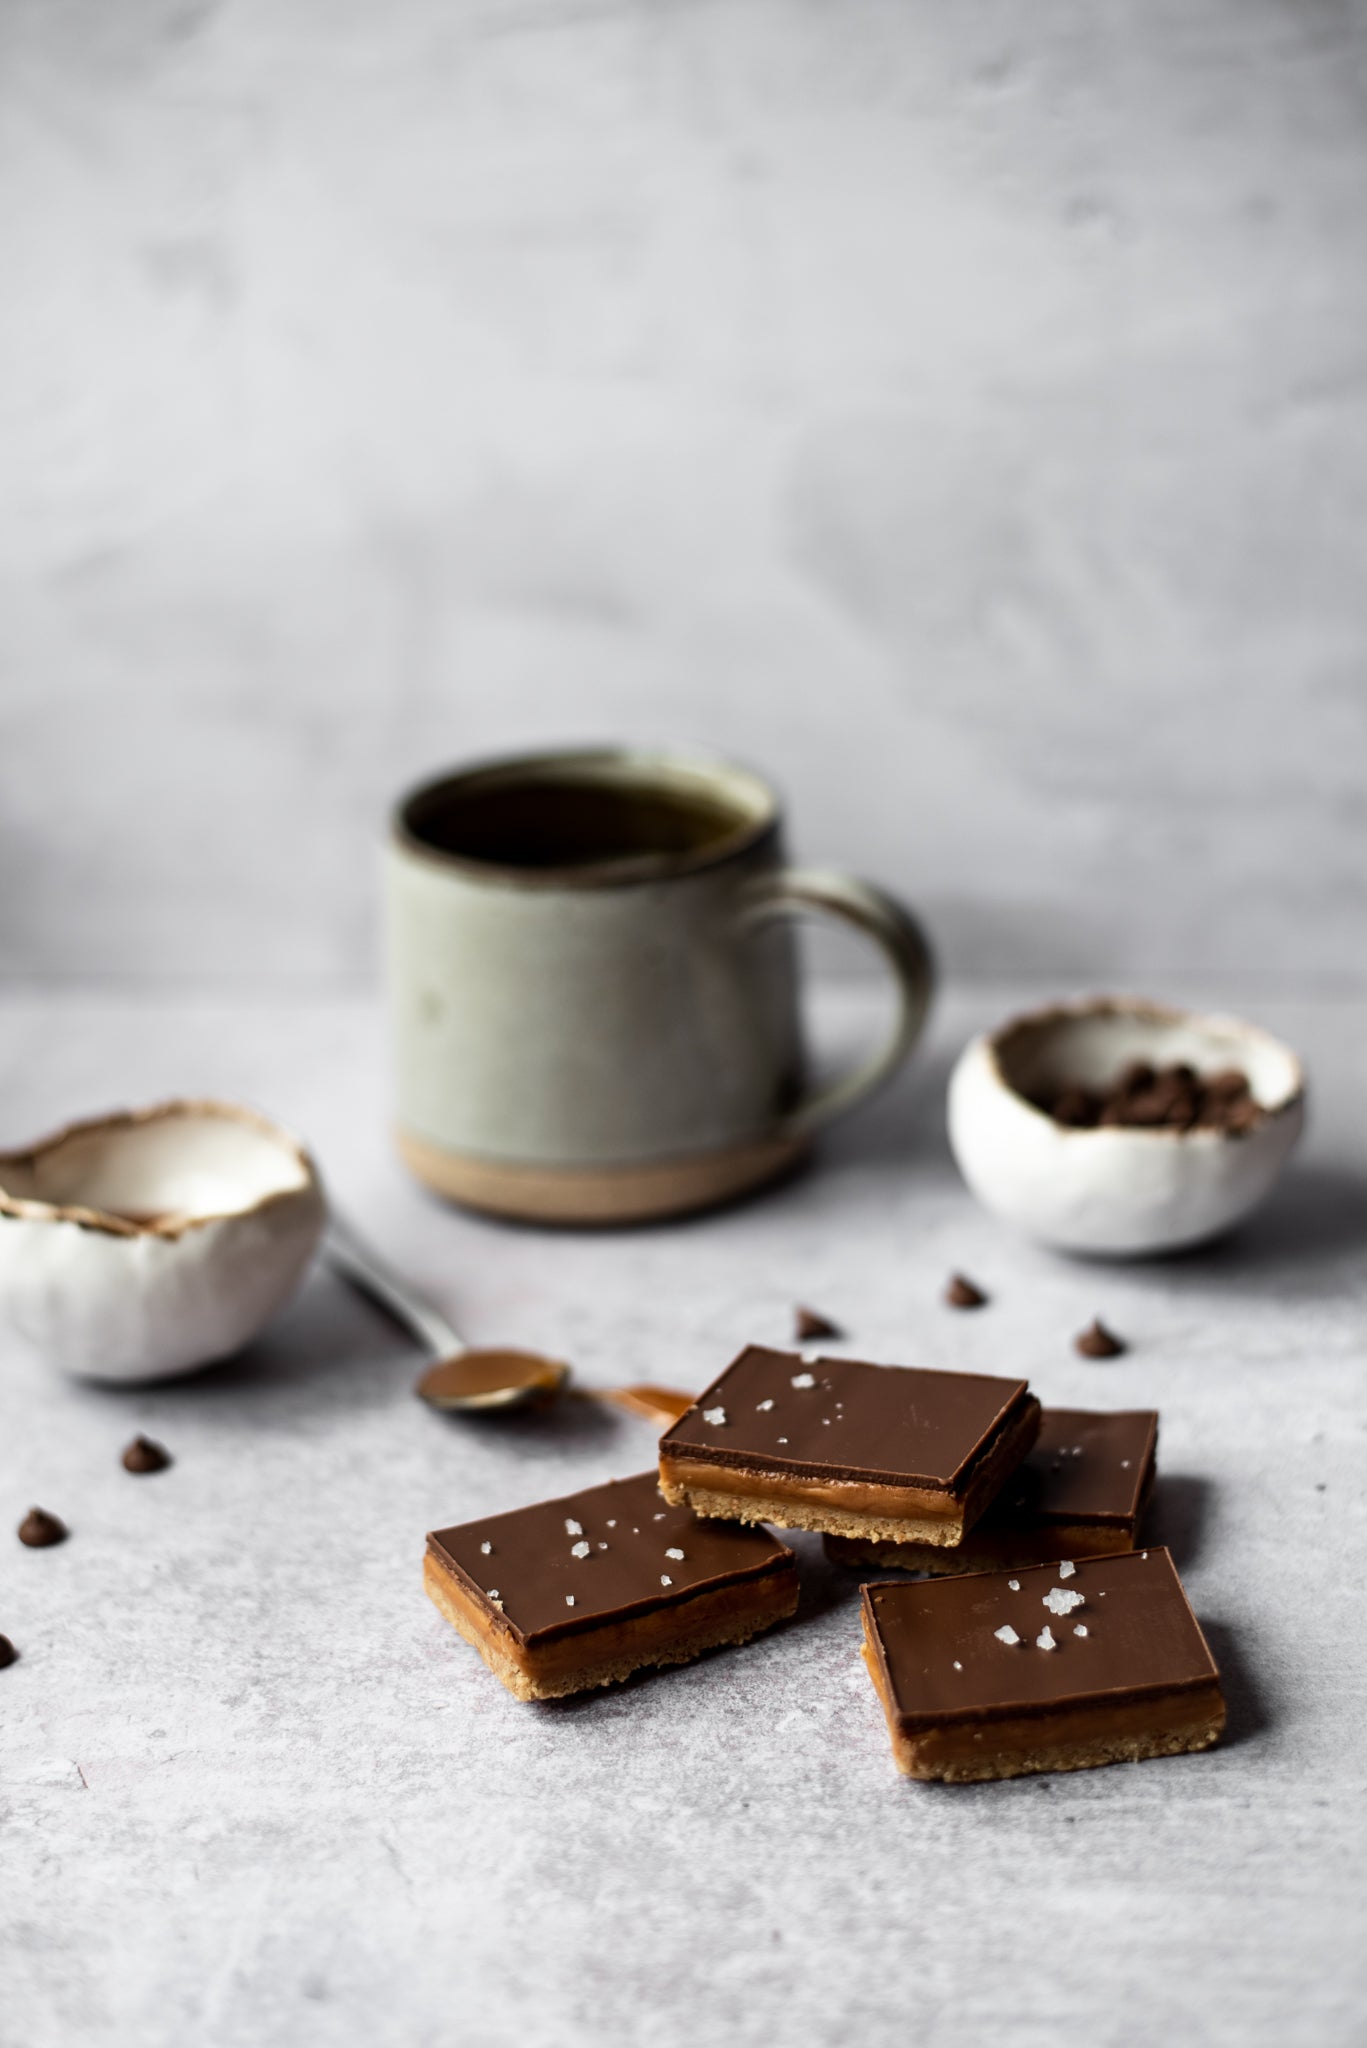 Toffee-Topped-Shortbread-WEB-RES-5.jpg